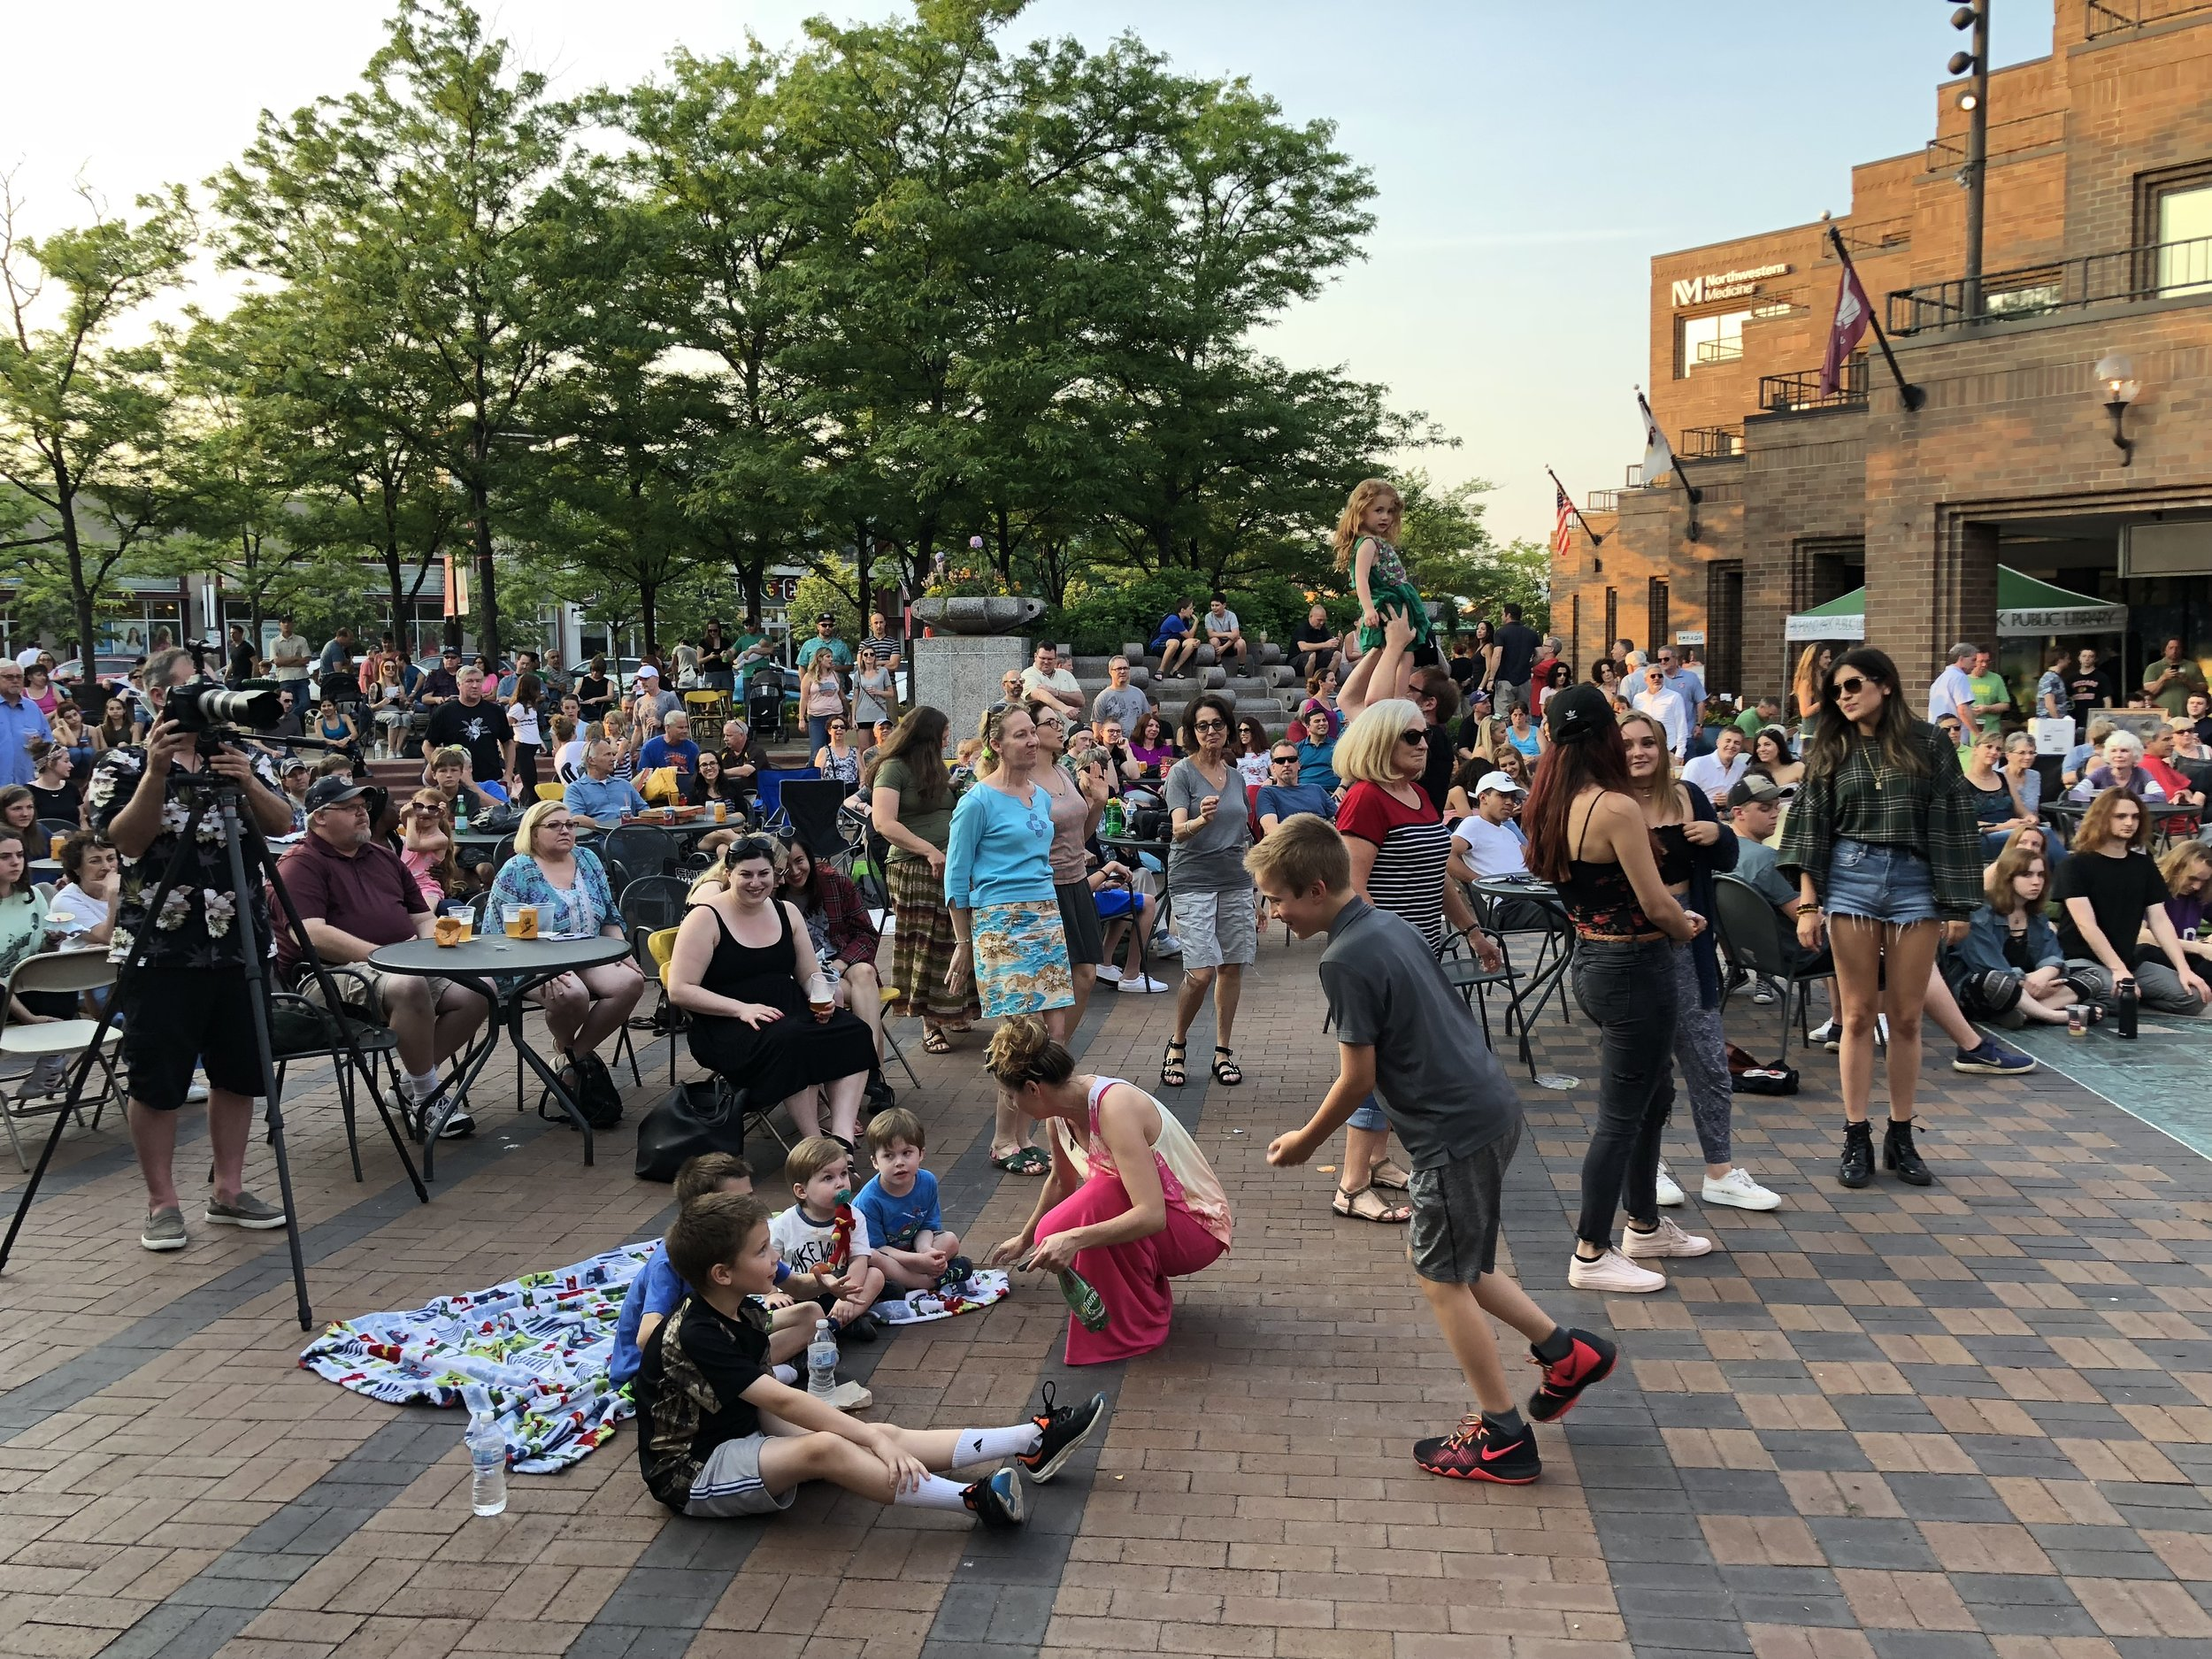 The crowd enjoys the tunes at the 2018 Bitter Jester Music Festival in downtown Highland Park, IL.